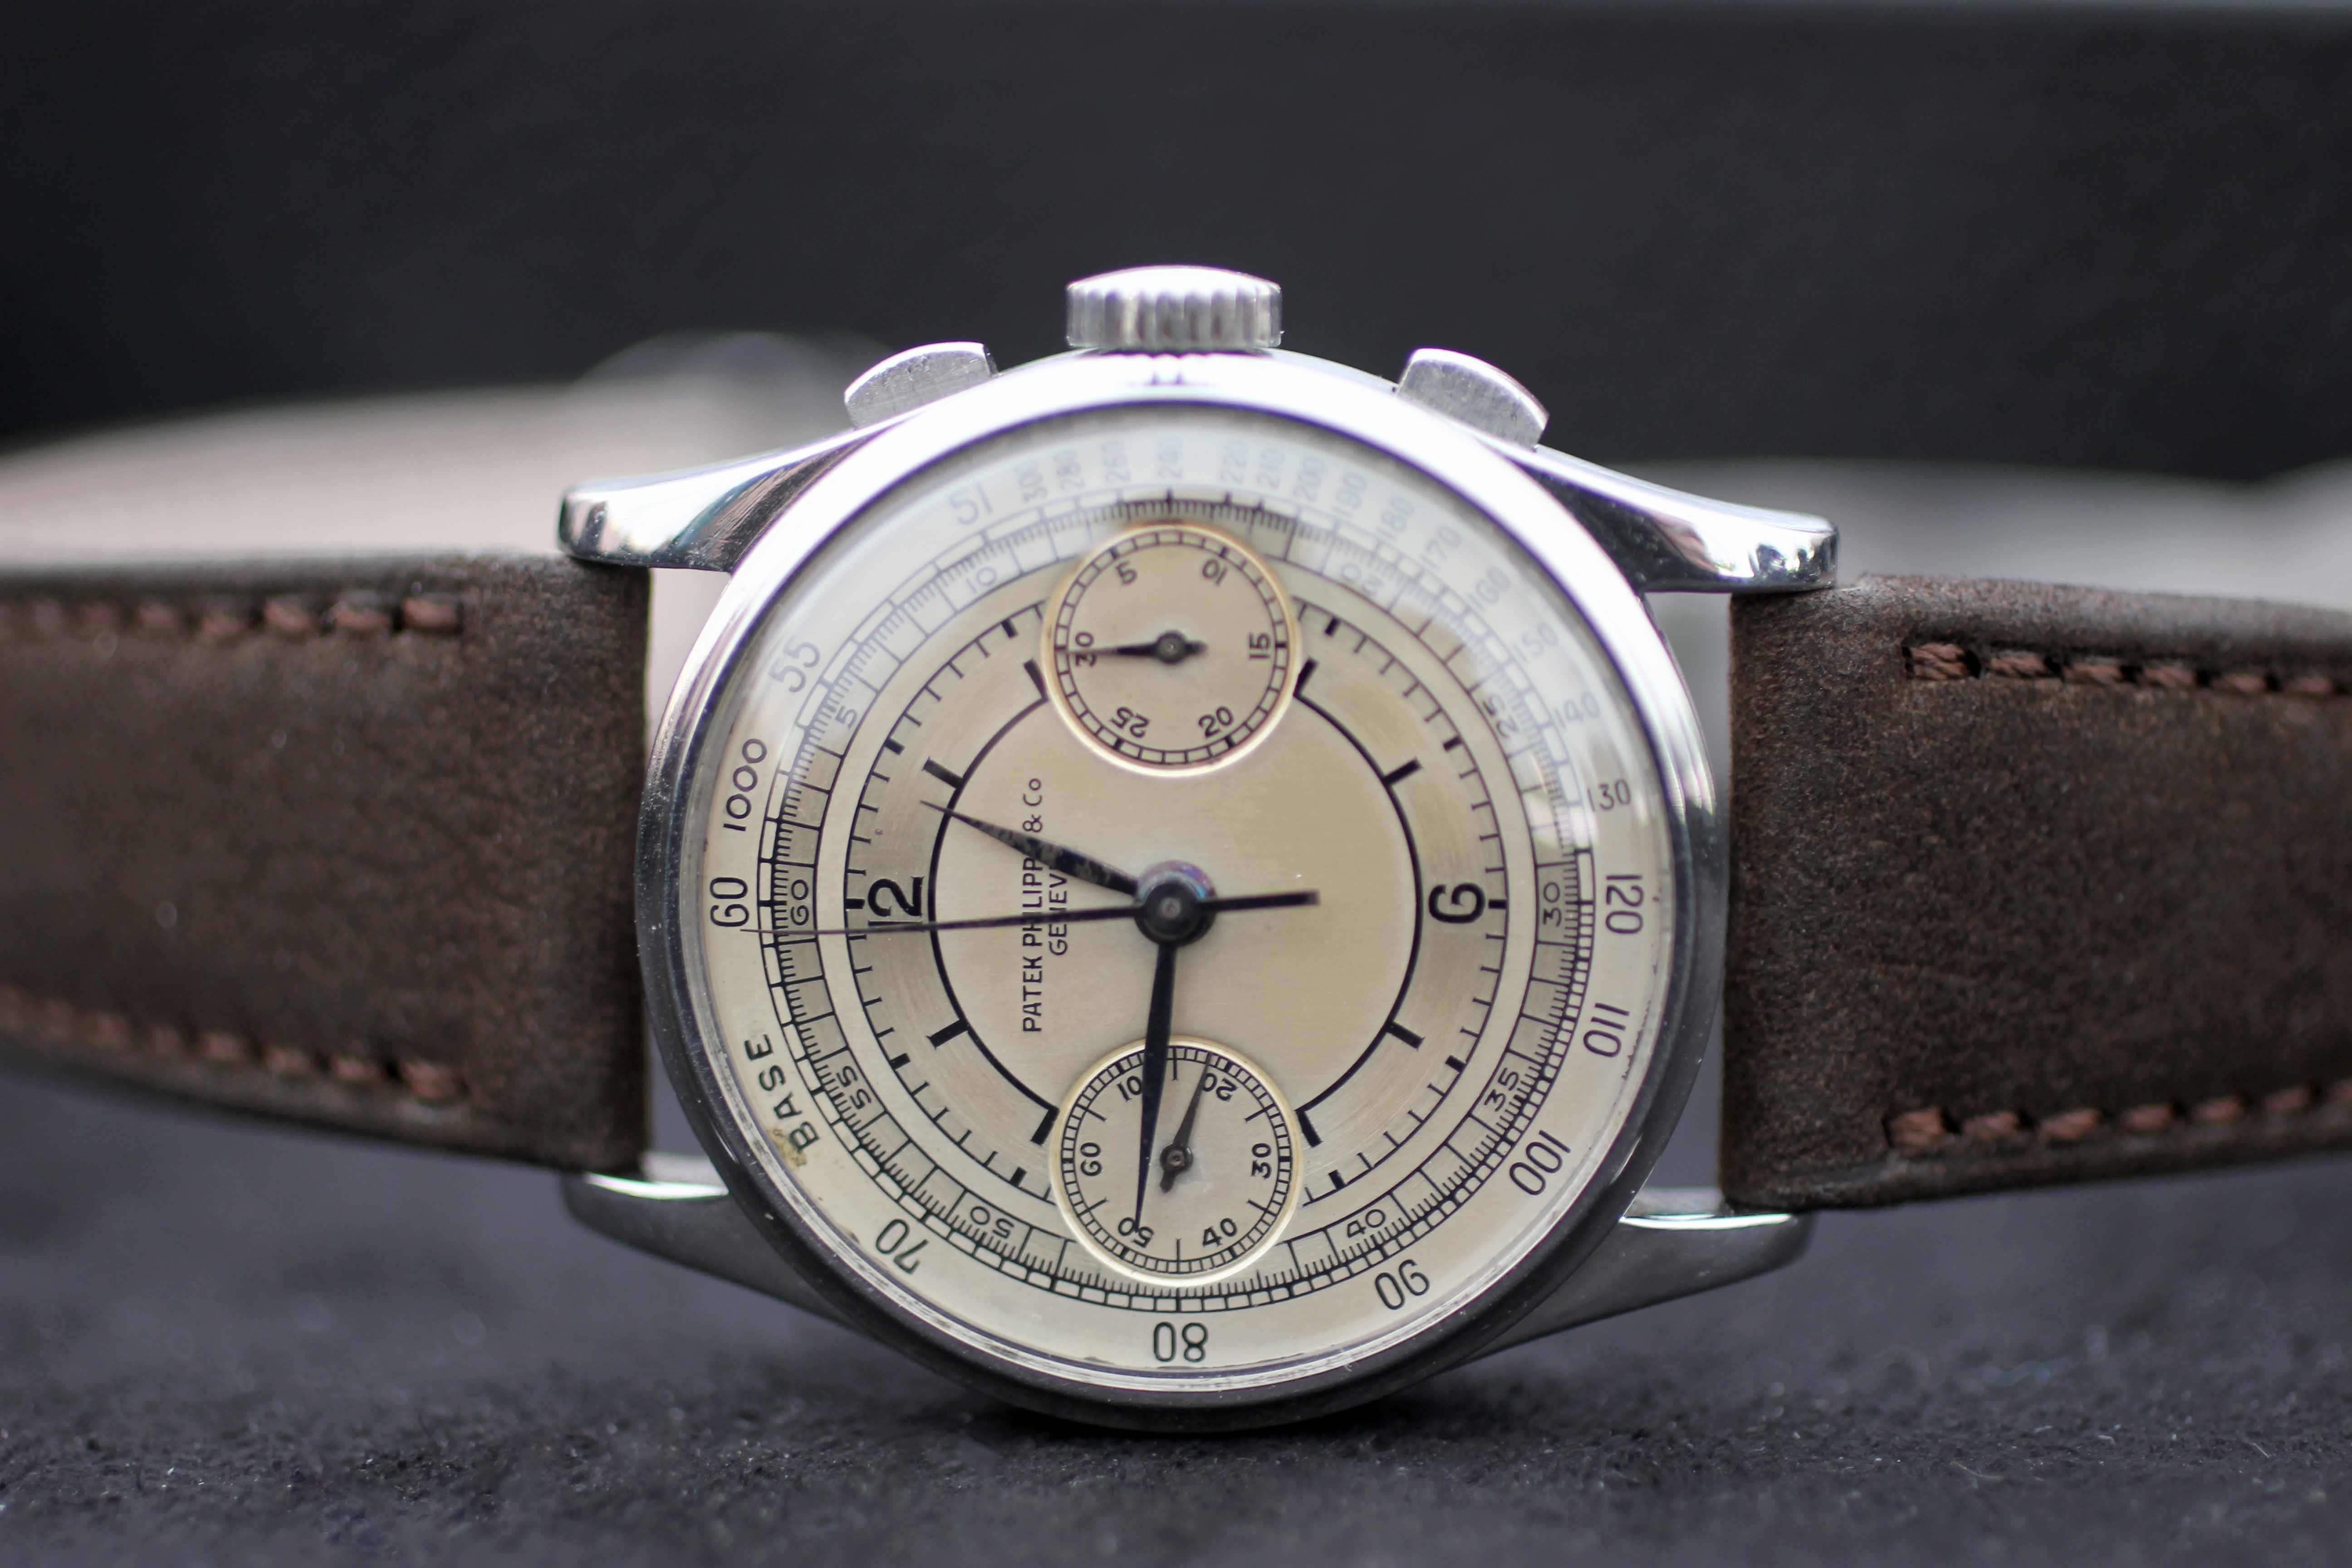 Lot 30: Patek Philippe 130; sold for CHF 725,000. Recapping The 88 Epic Stainless Steel Chronographs Sale At Phillips, A 100% Auction, With Several Massive Hits, Strong Showing From Niche Brands Recapping The 88 Epic Stainless Steel Chronographs Sale At Phillips, A 100% Auction, With Several Massive Hits, Strong Showing From Niche Brands IMG 8697